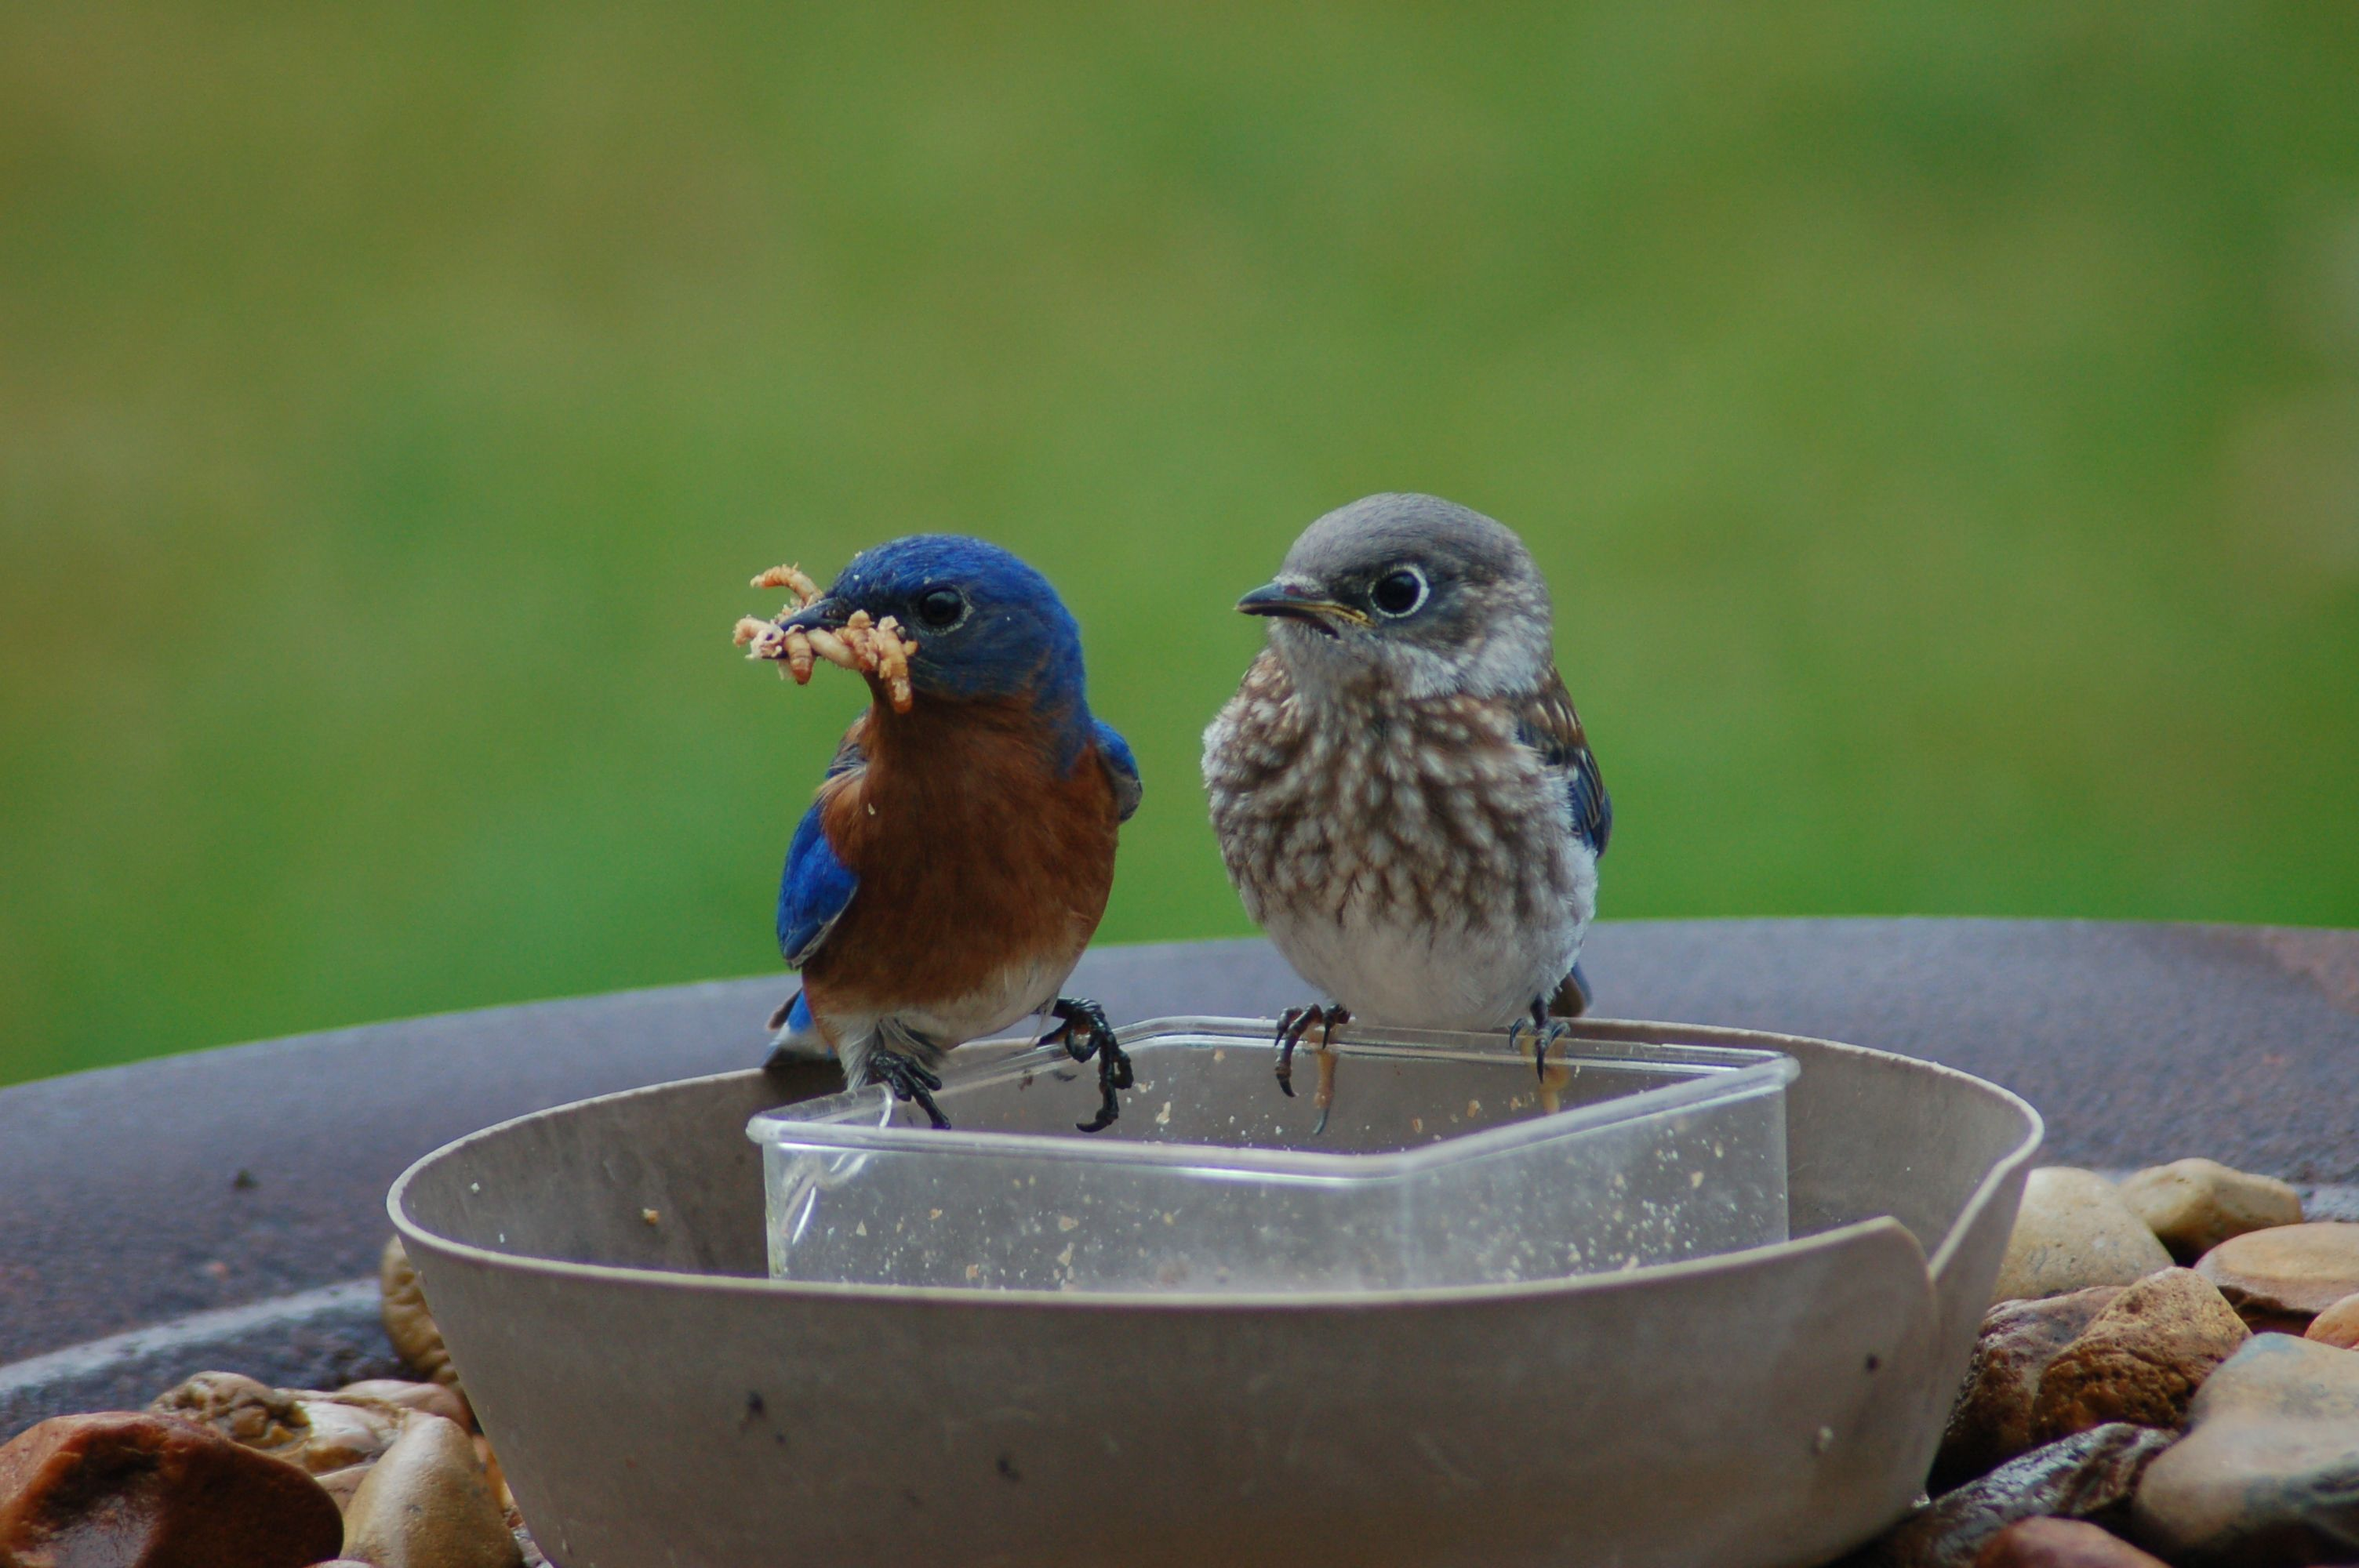 Dad and baby eating together   Blue bird, Bird pictures, Birds